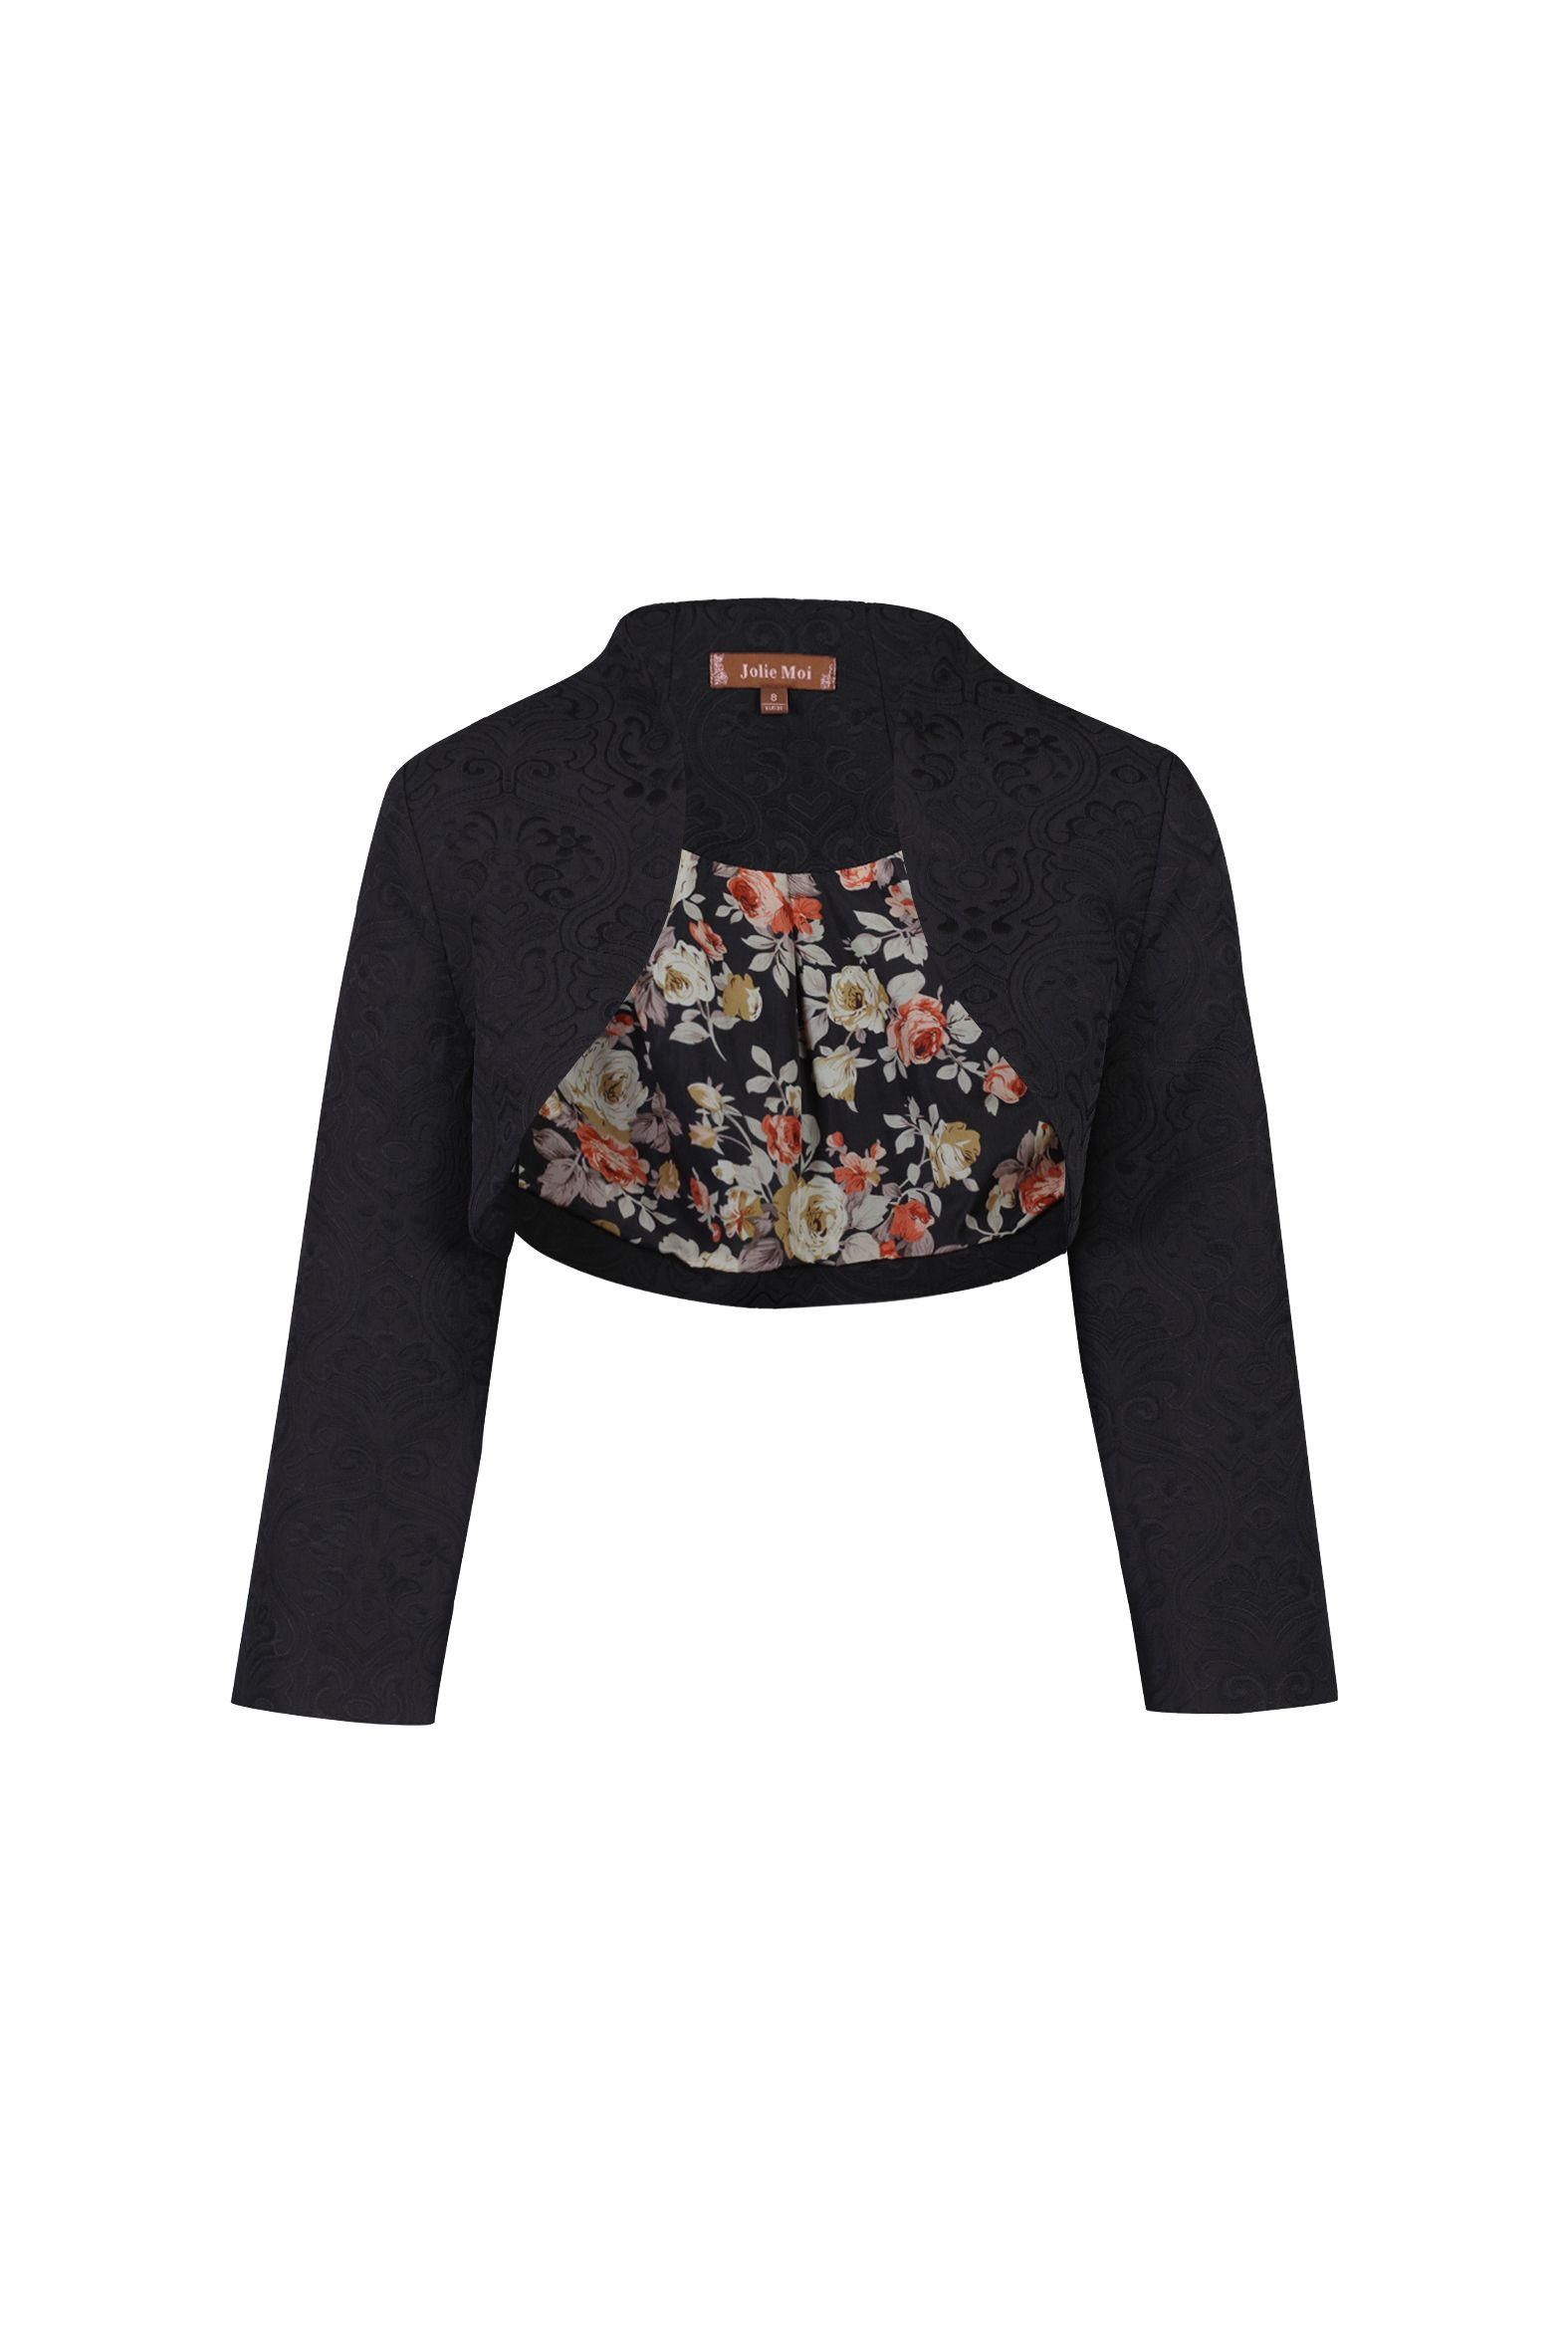 Jolie Moi High Collar  Bolero Jacket, Black